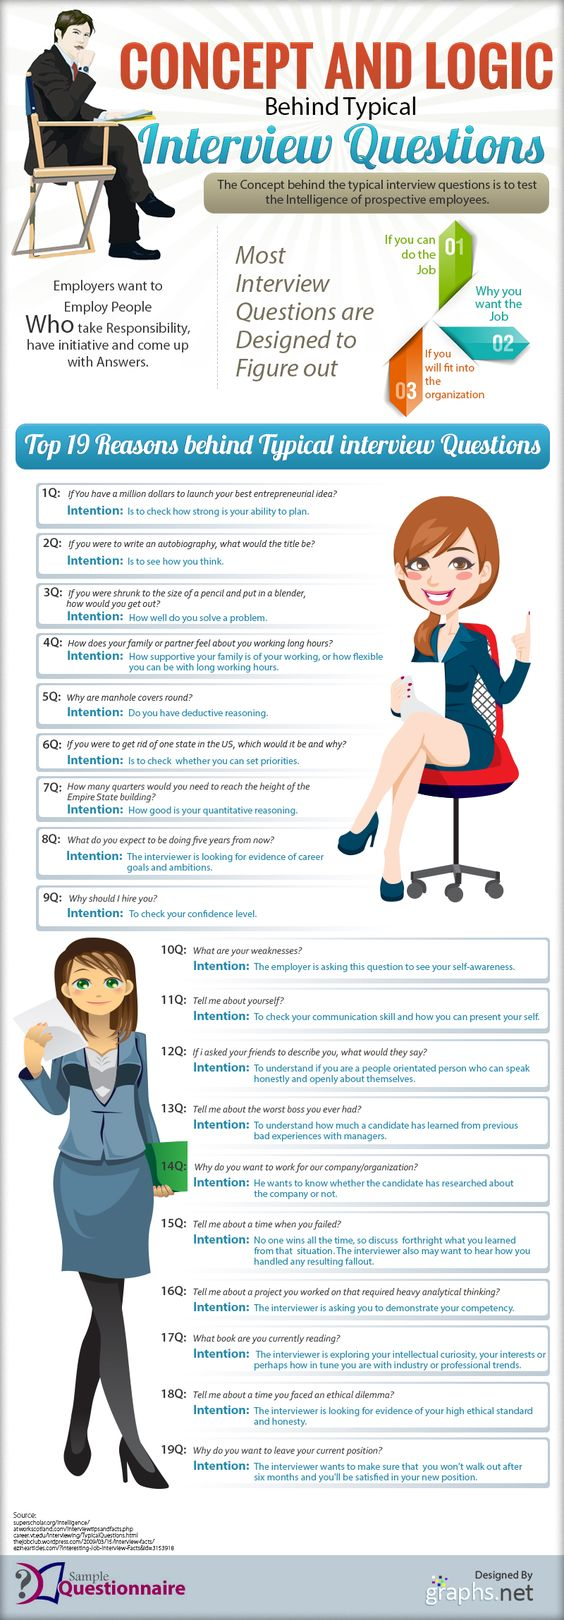 7 Typical Interview Questions Your Job Interviewer Will Ask You